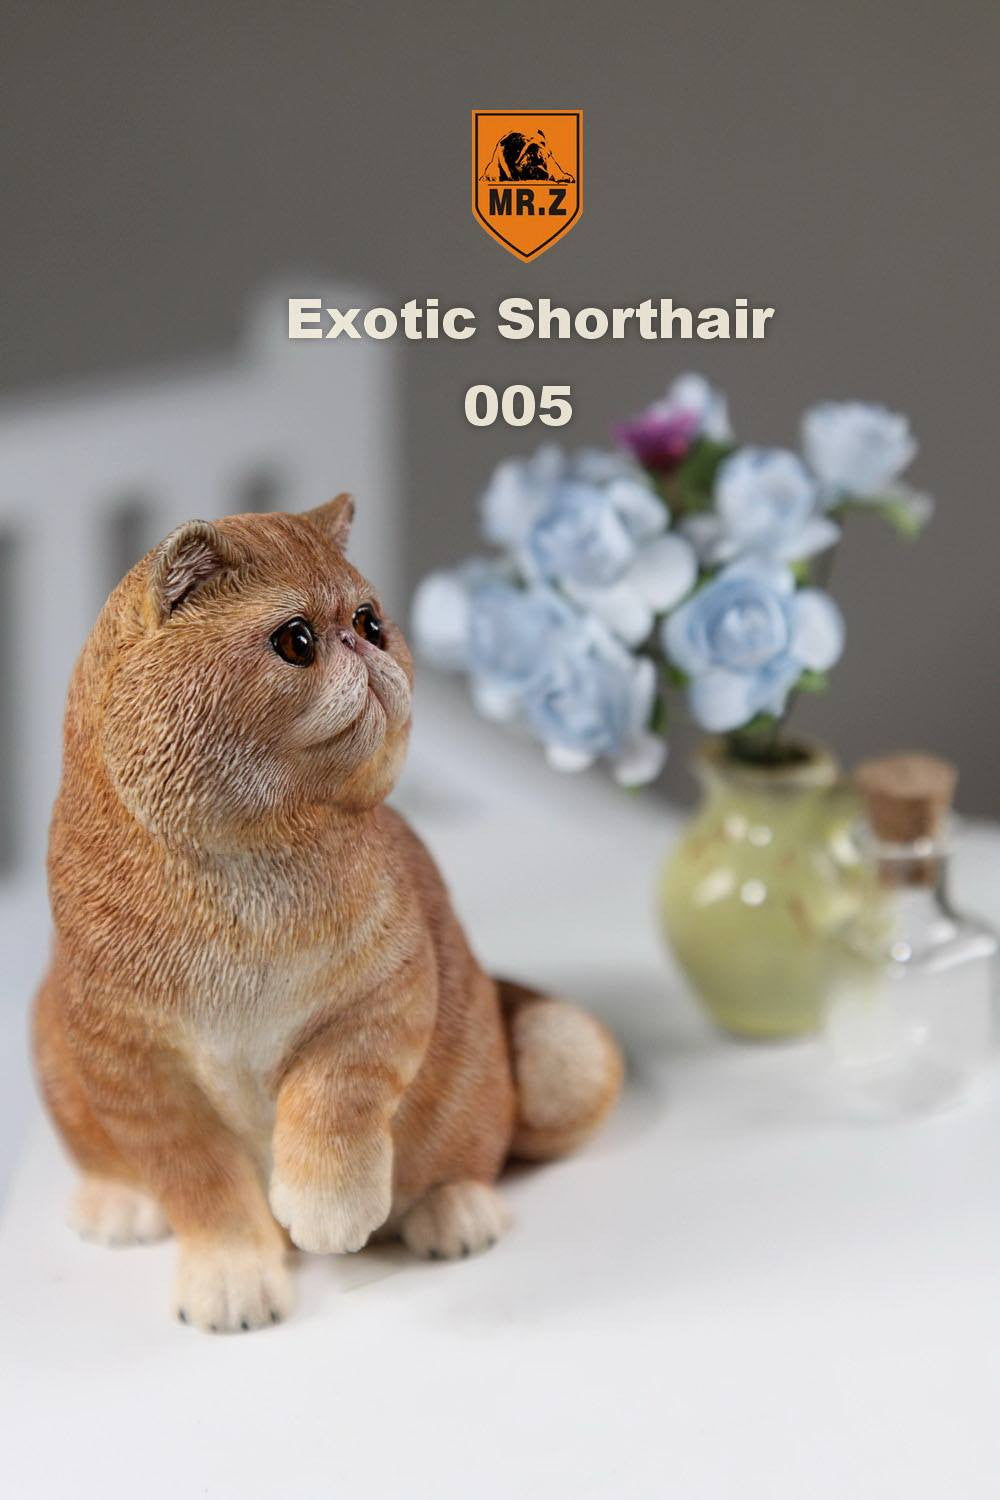 MR.Z - Real Animal Series No.8 - 1/6th Scale Exotic Shorthair Cat (Garfield) 001-005